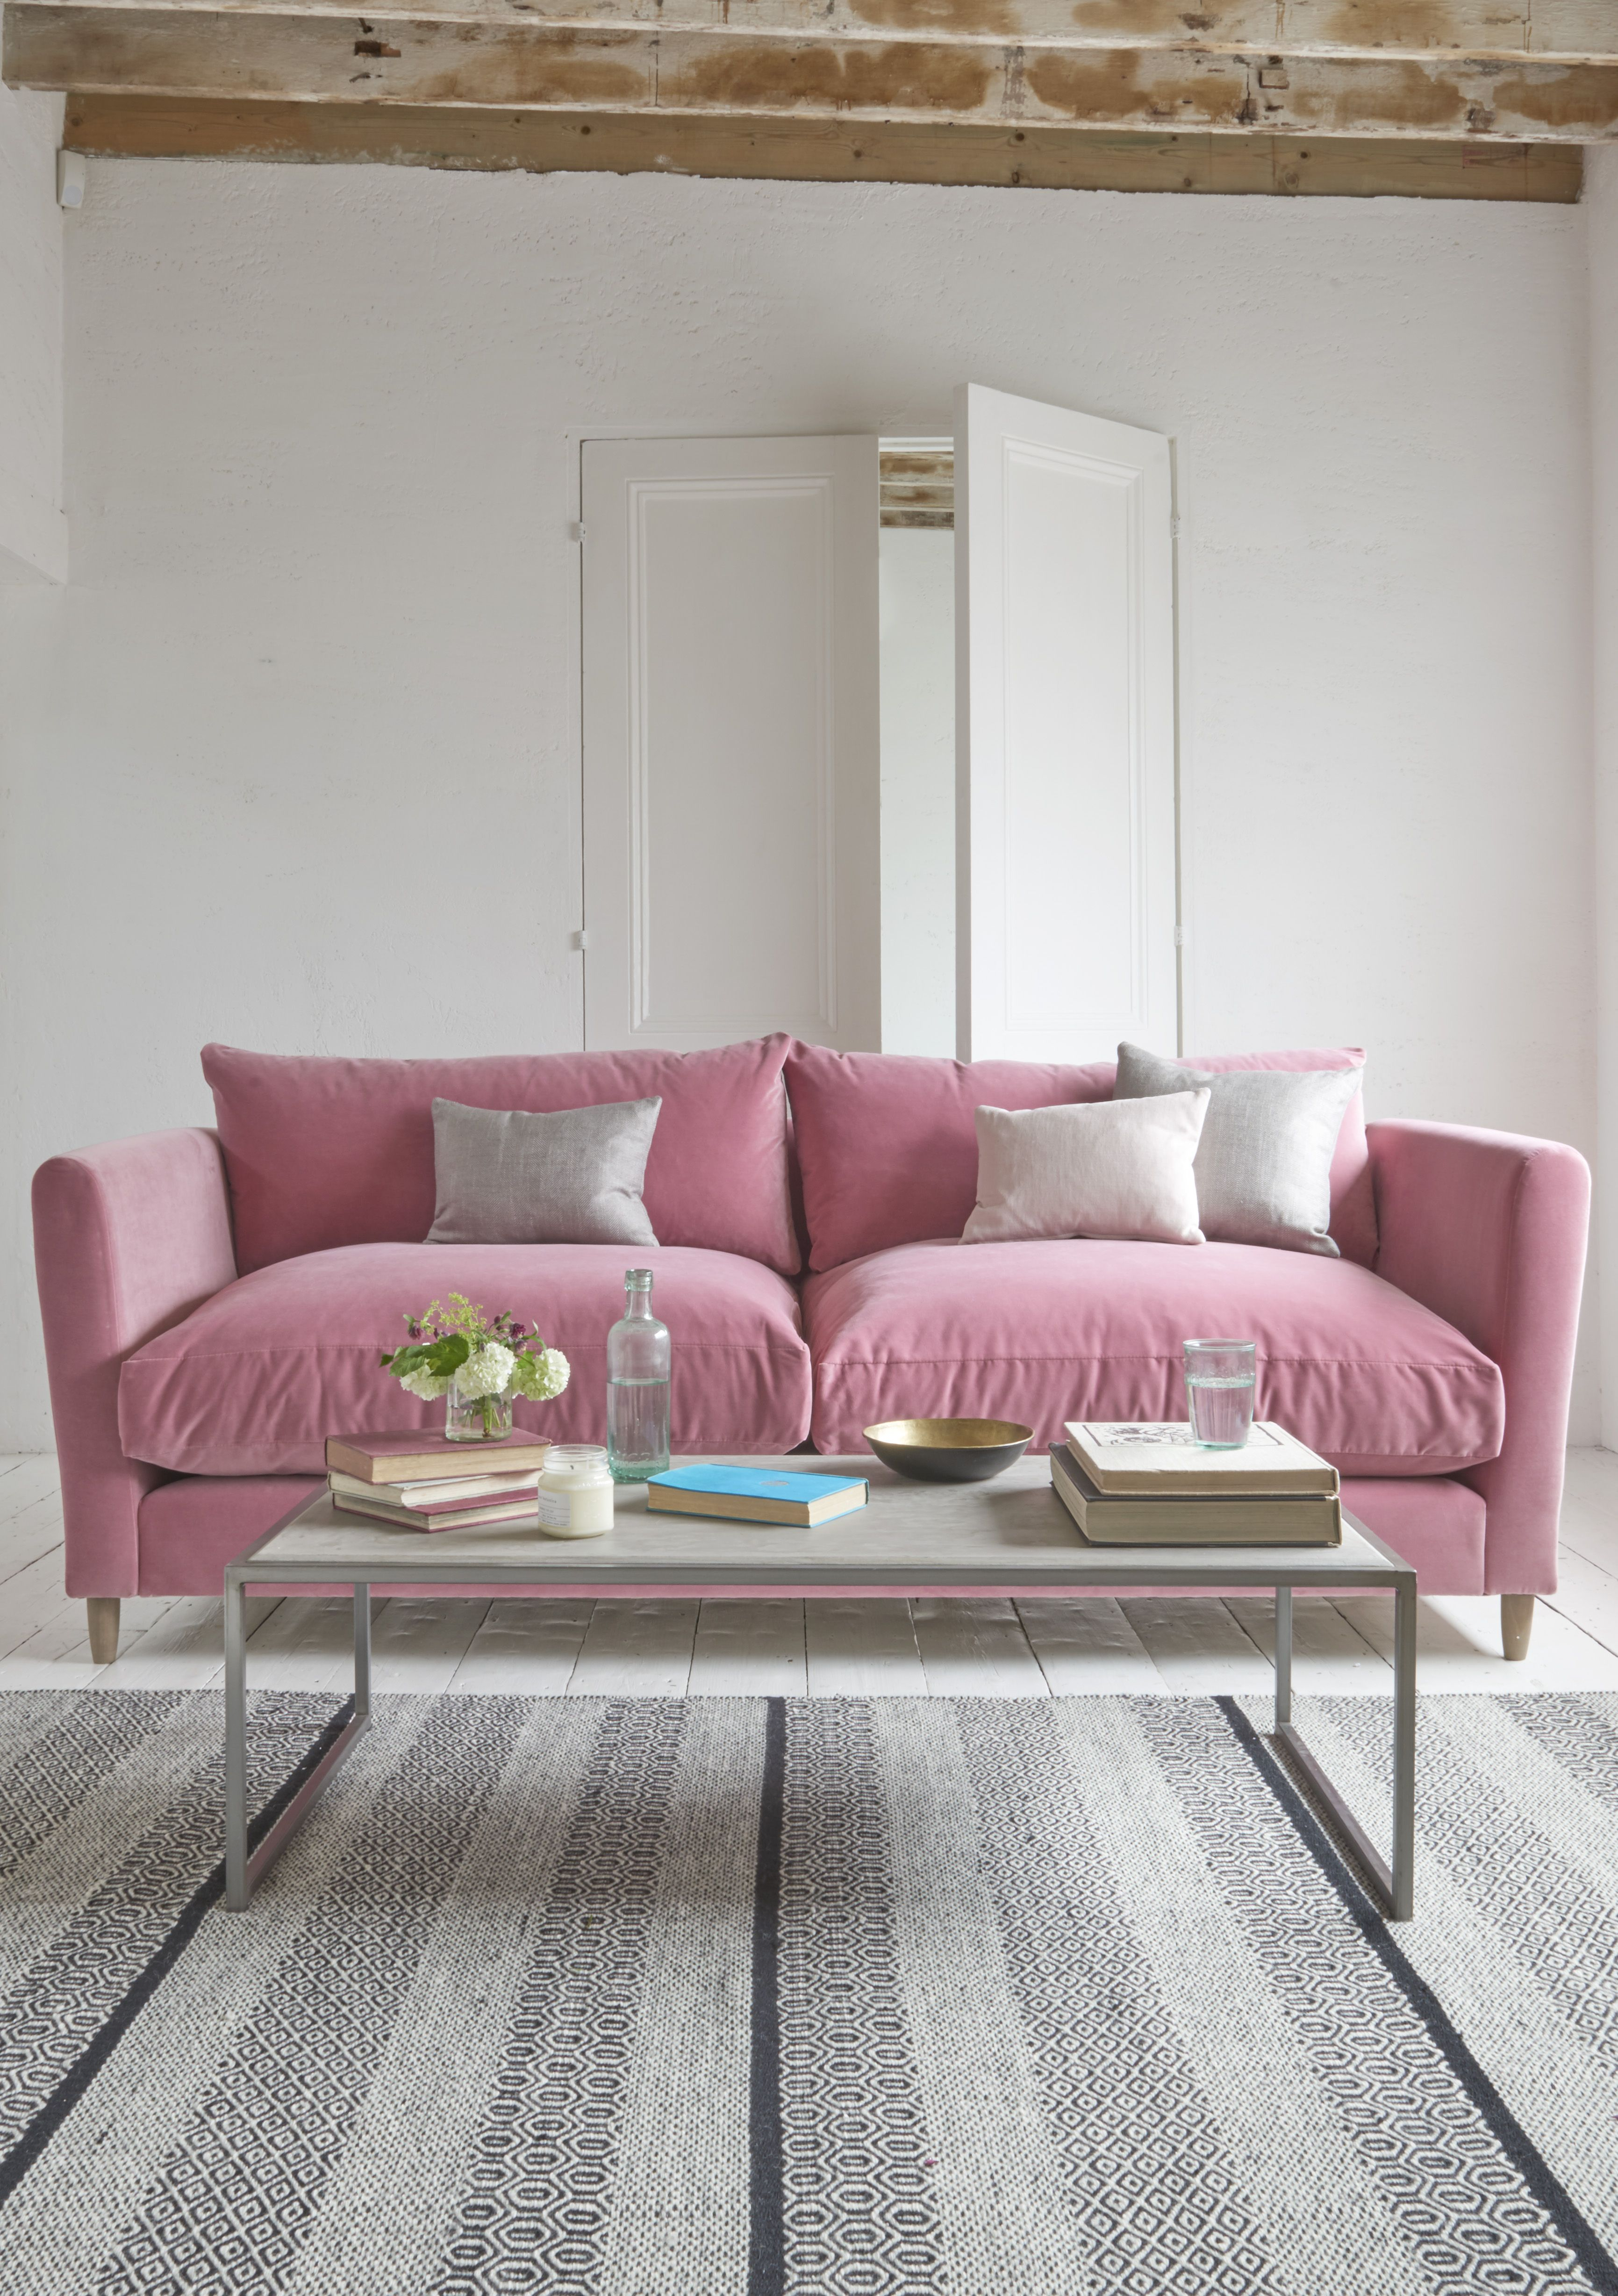 Loaf S Comfy Flopster Sofa In A Deep Pink Dusty Rose Velvet In This White Washed Living Room With Pink Couch Living Room Pink Living Room Pink Sofa Living Room